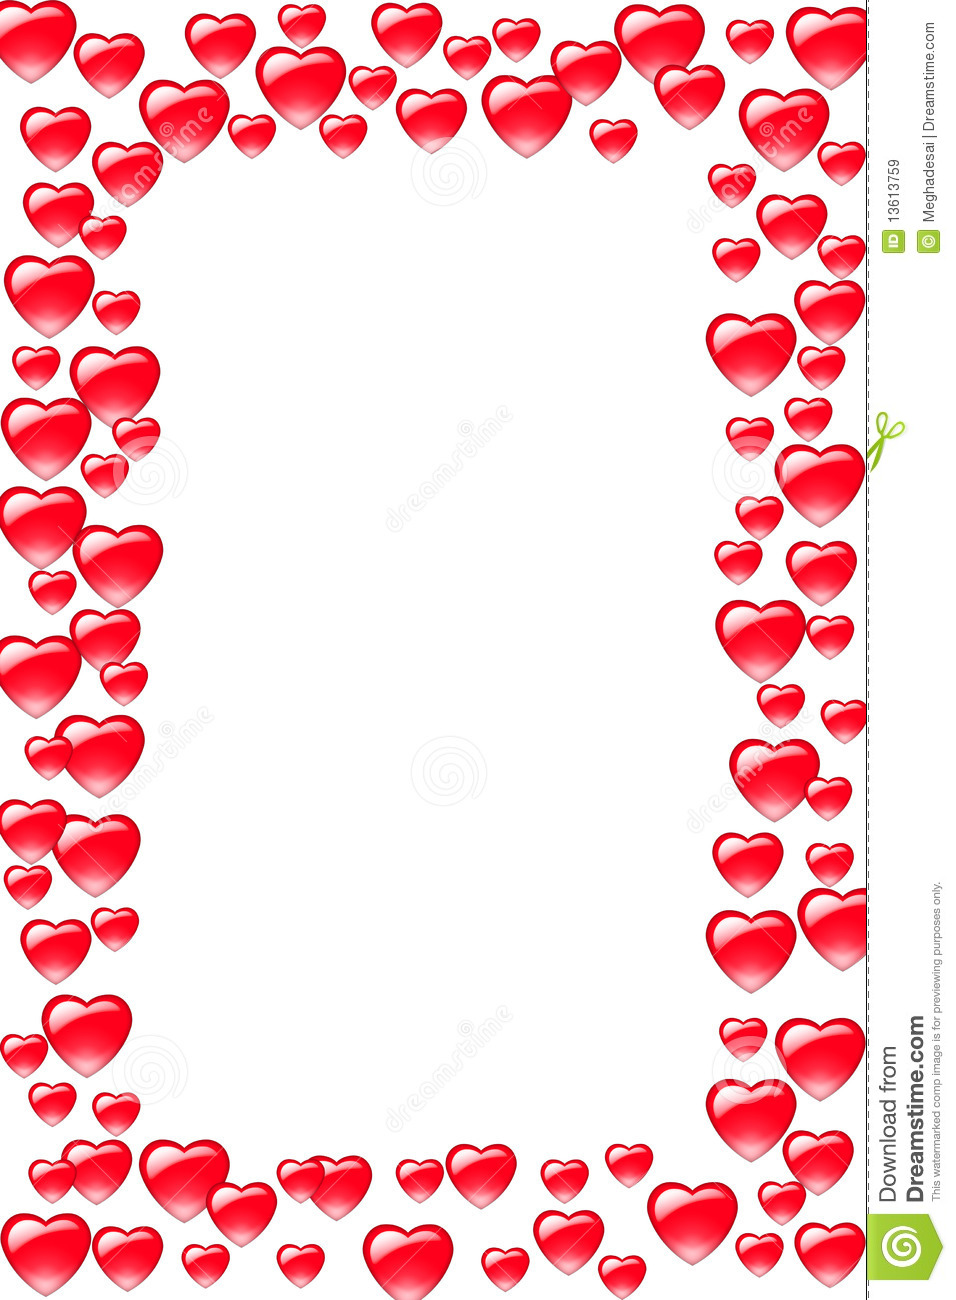 Heart Border Royalty Free Stock Images - Image: 13613759